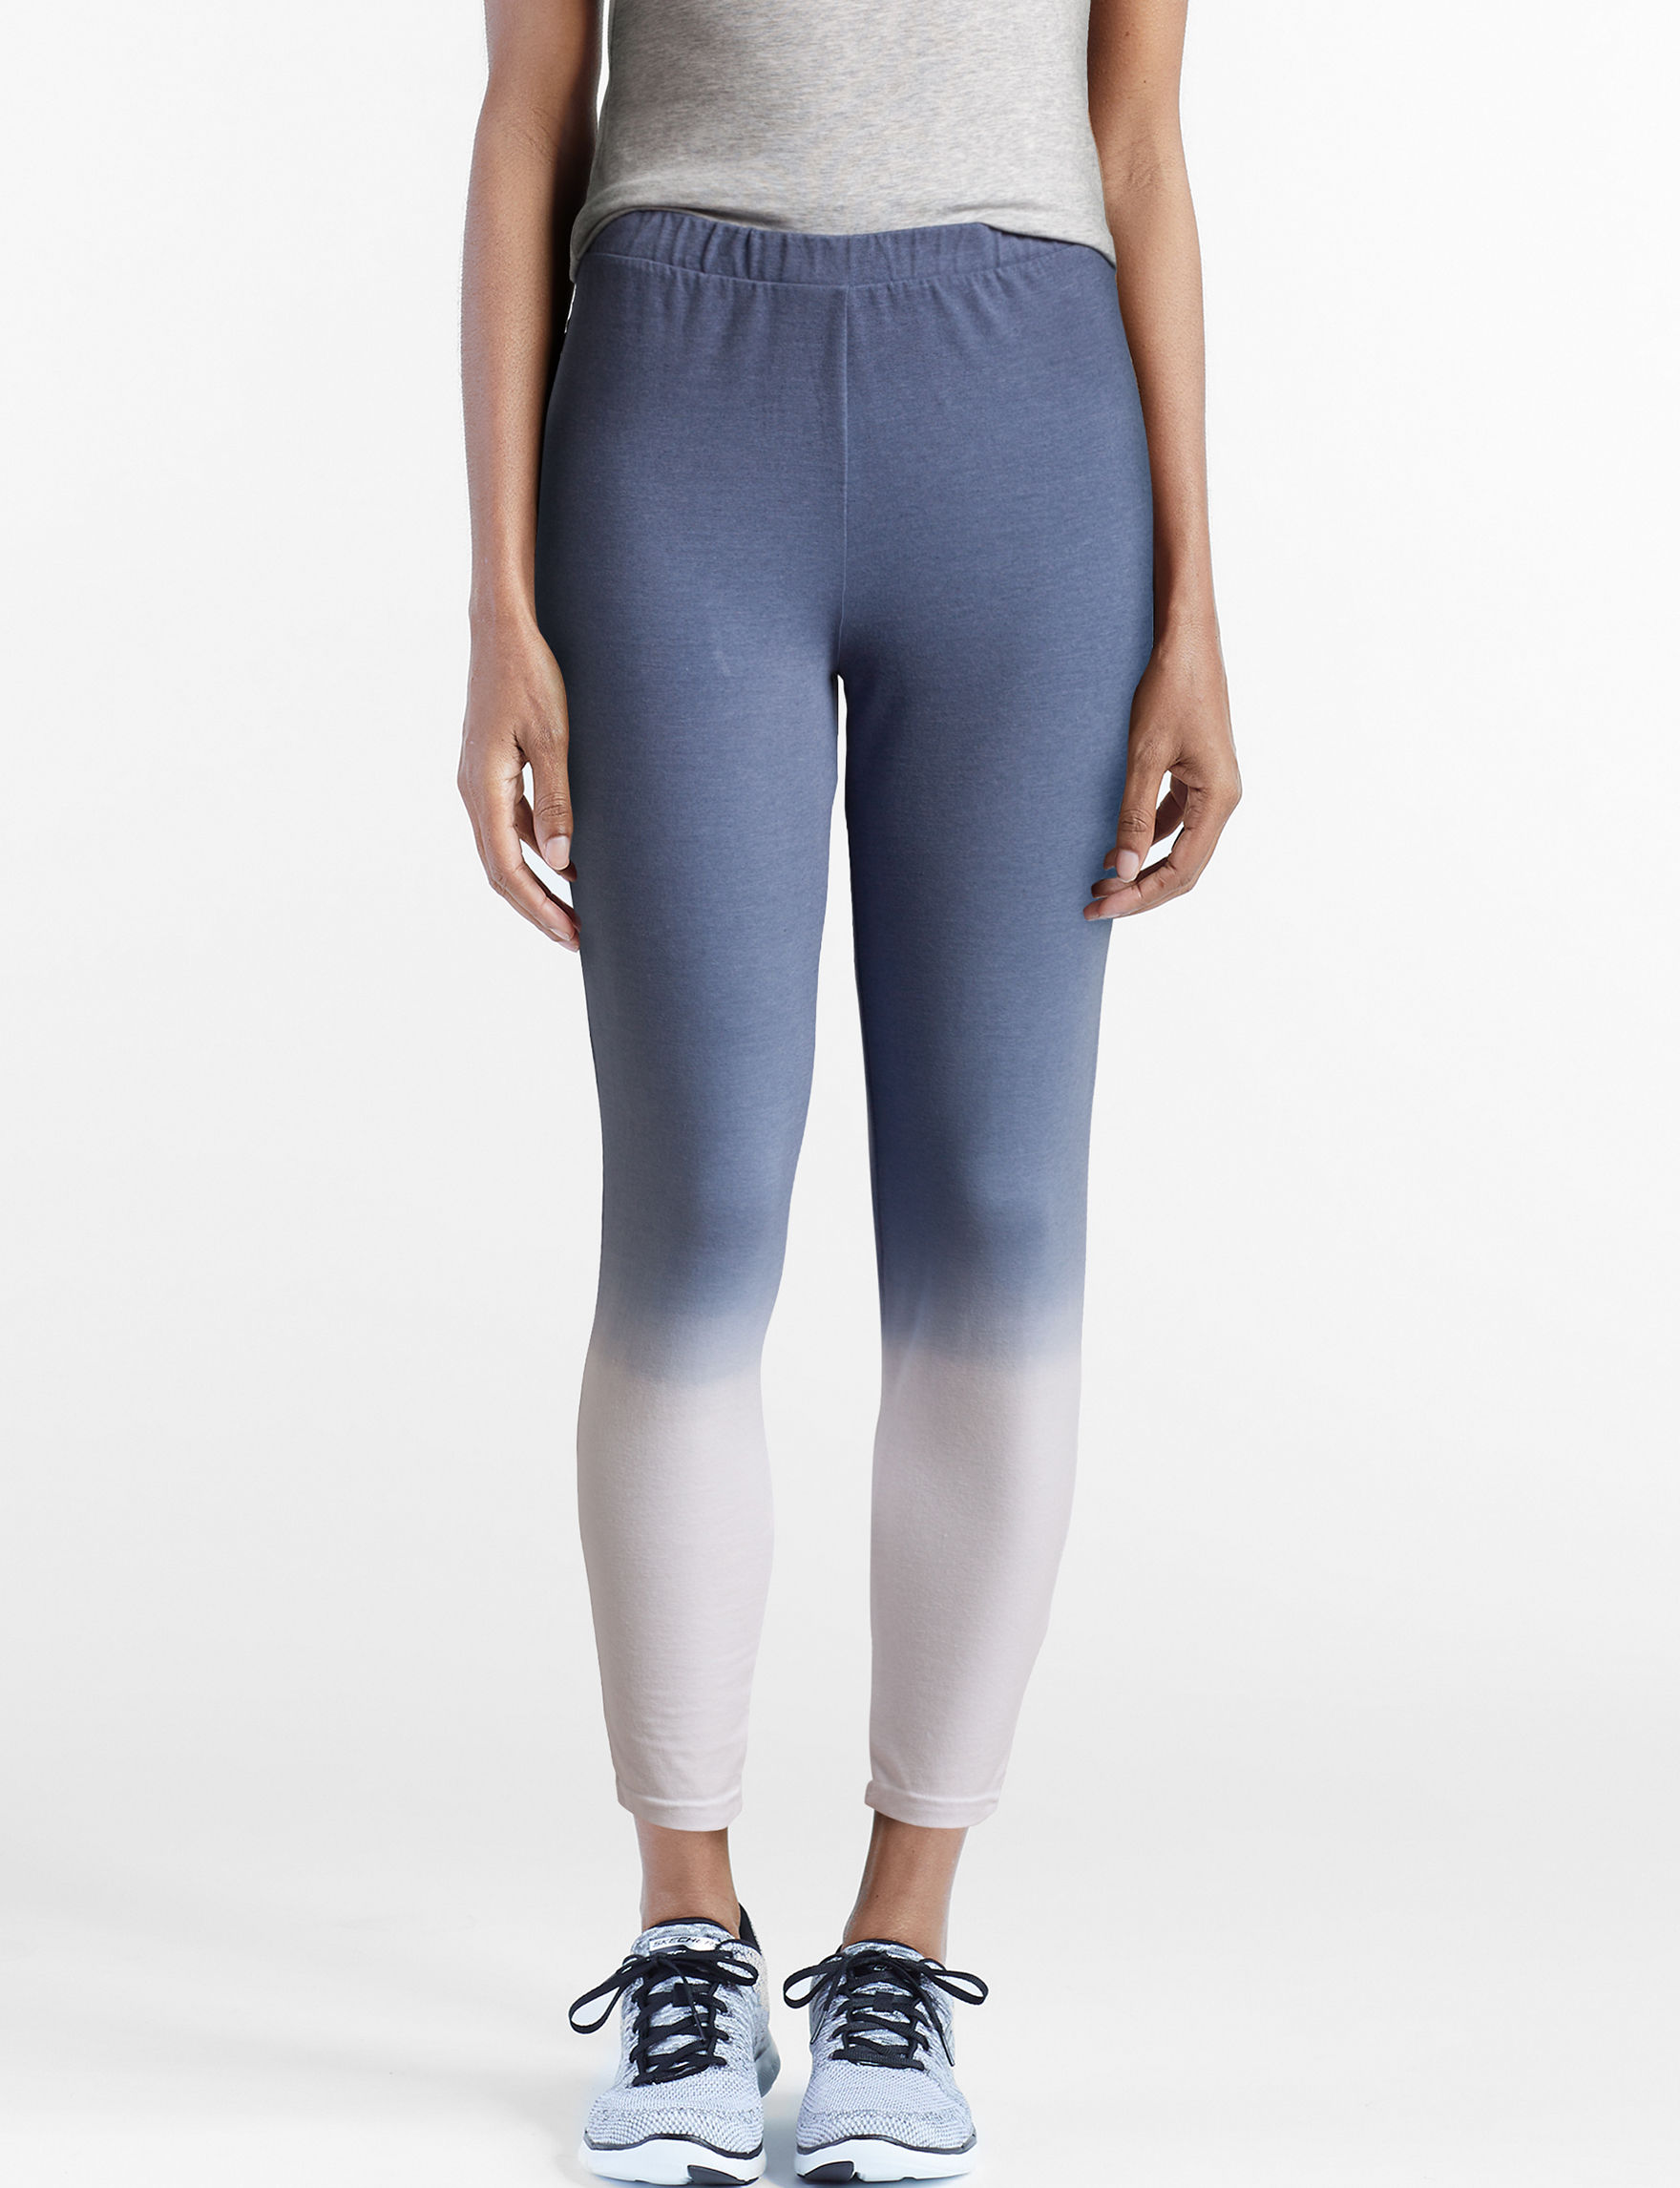 Justify Blue Leggings